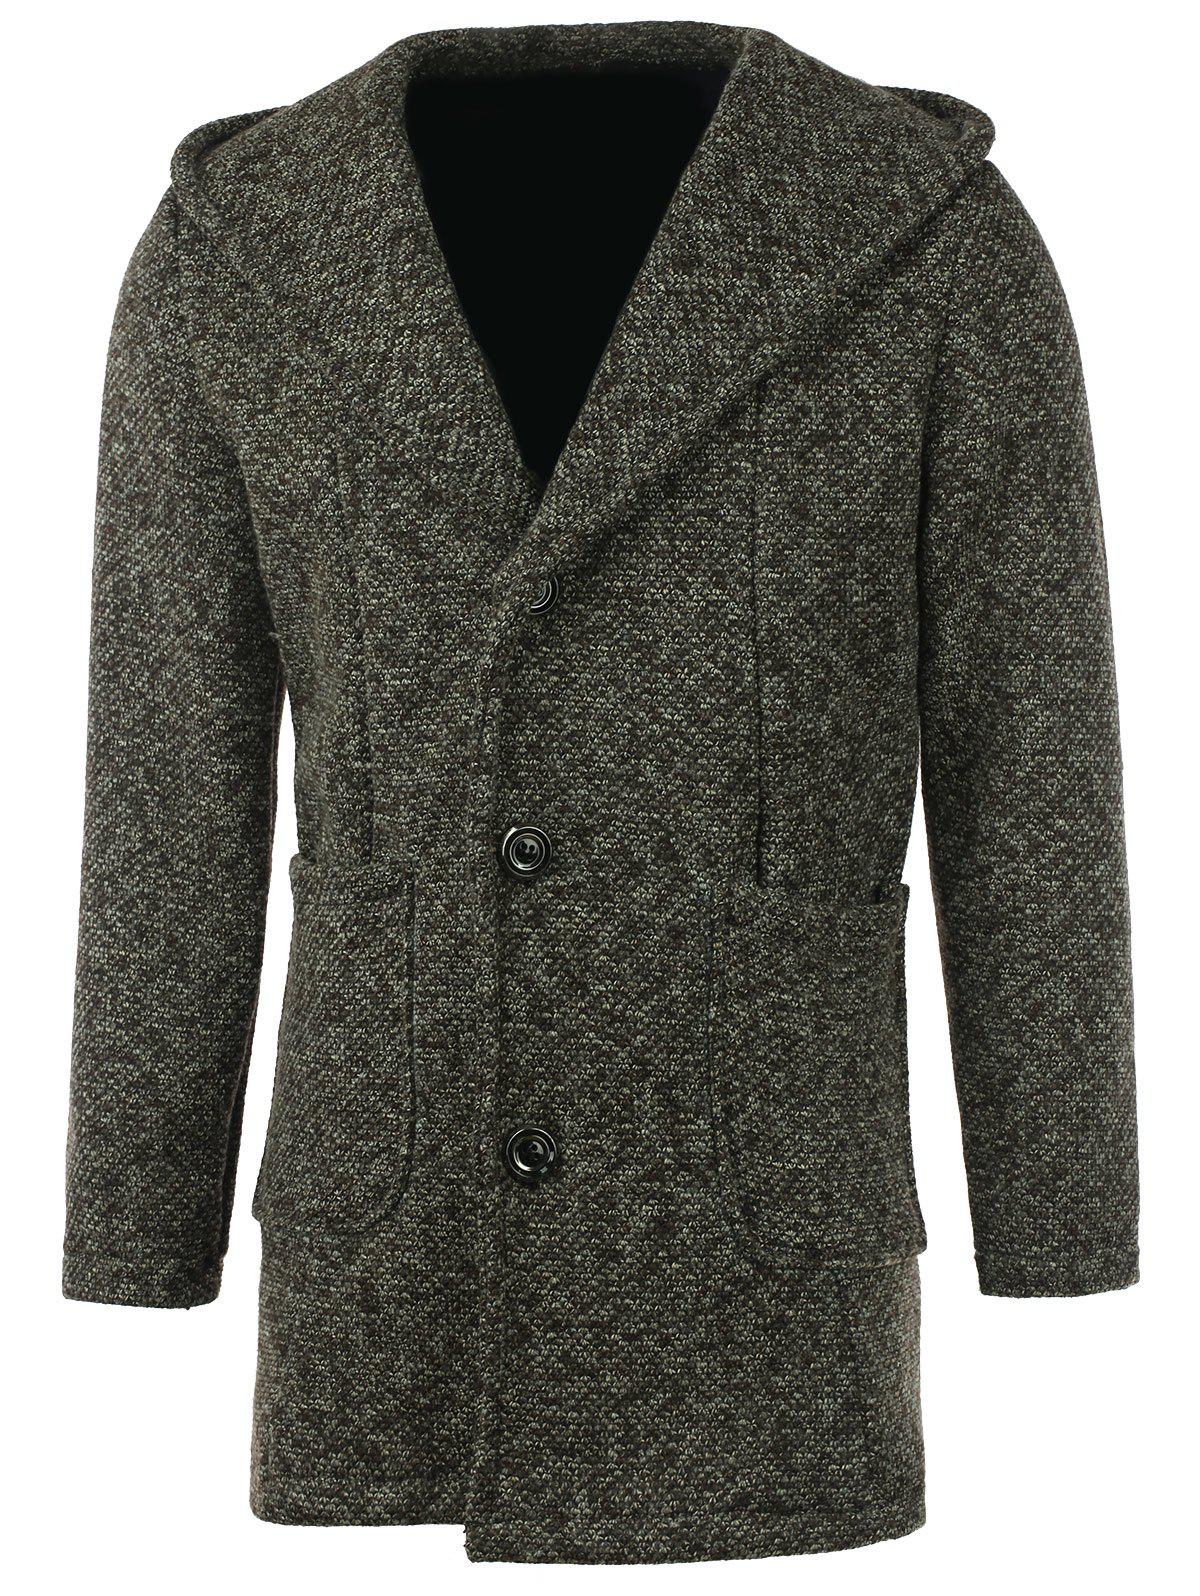 Patch Pocket Heathered Hooded Coat - CAMEL 3XL